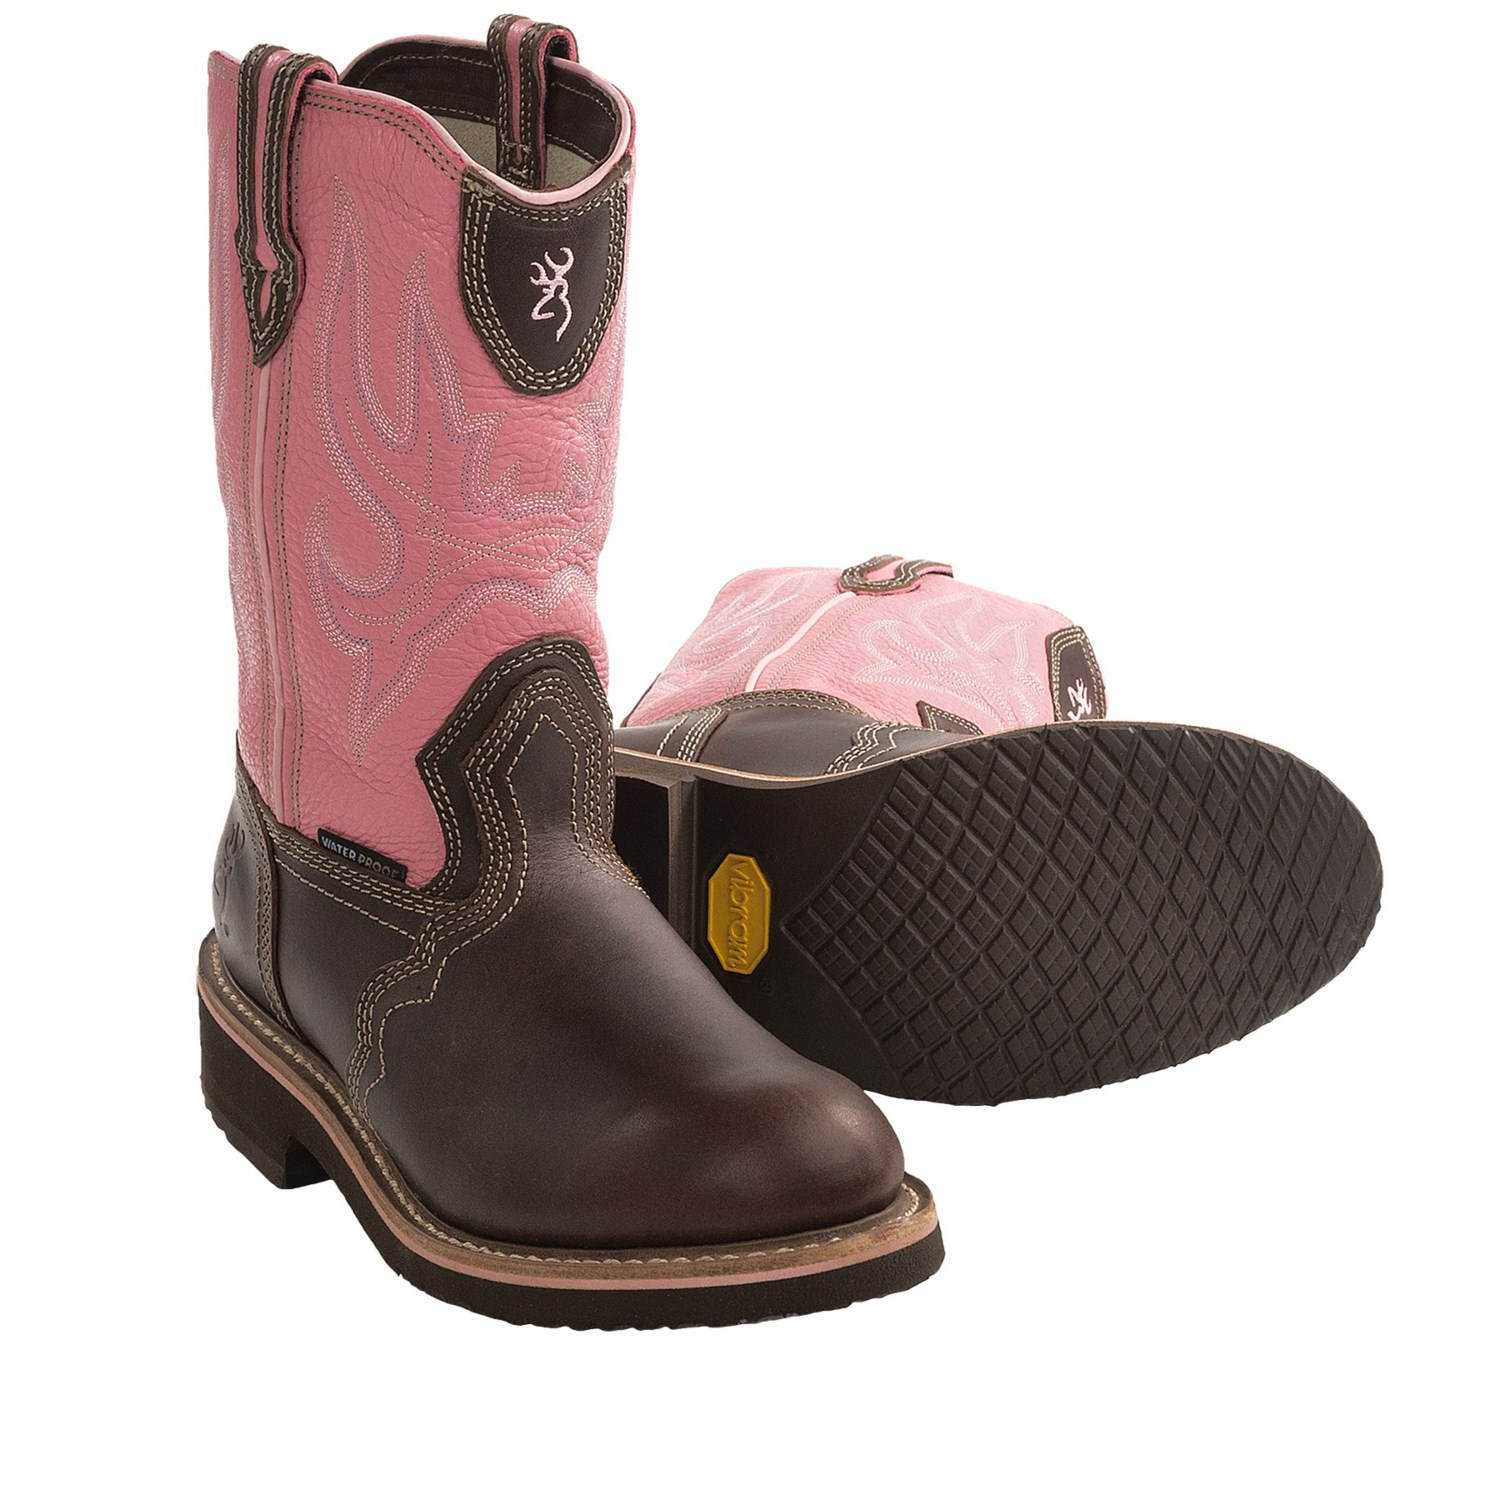 browning fancy stitch wellington boots waterproof for